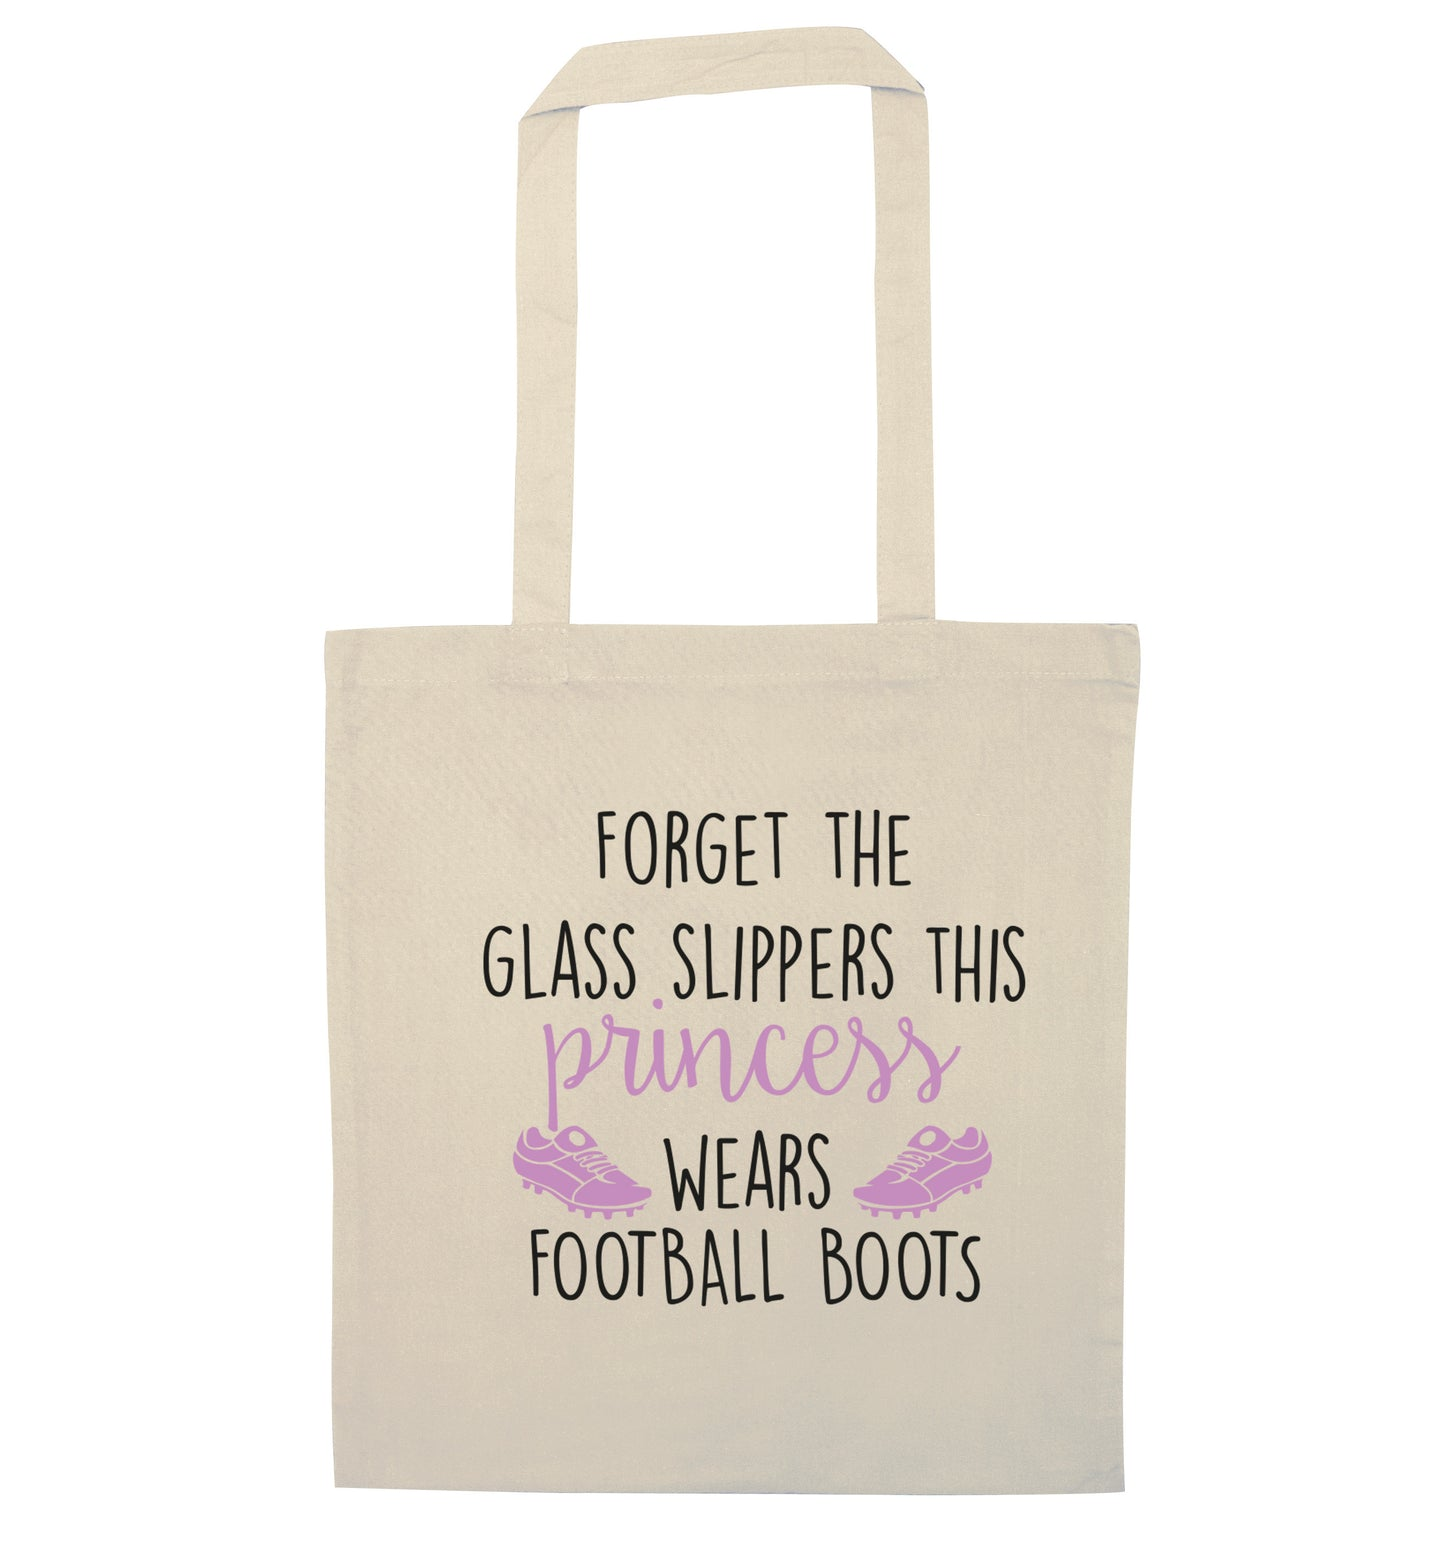 Forget the glass slippers this princess wears football boots natural tote bag